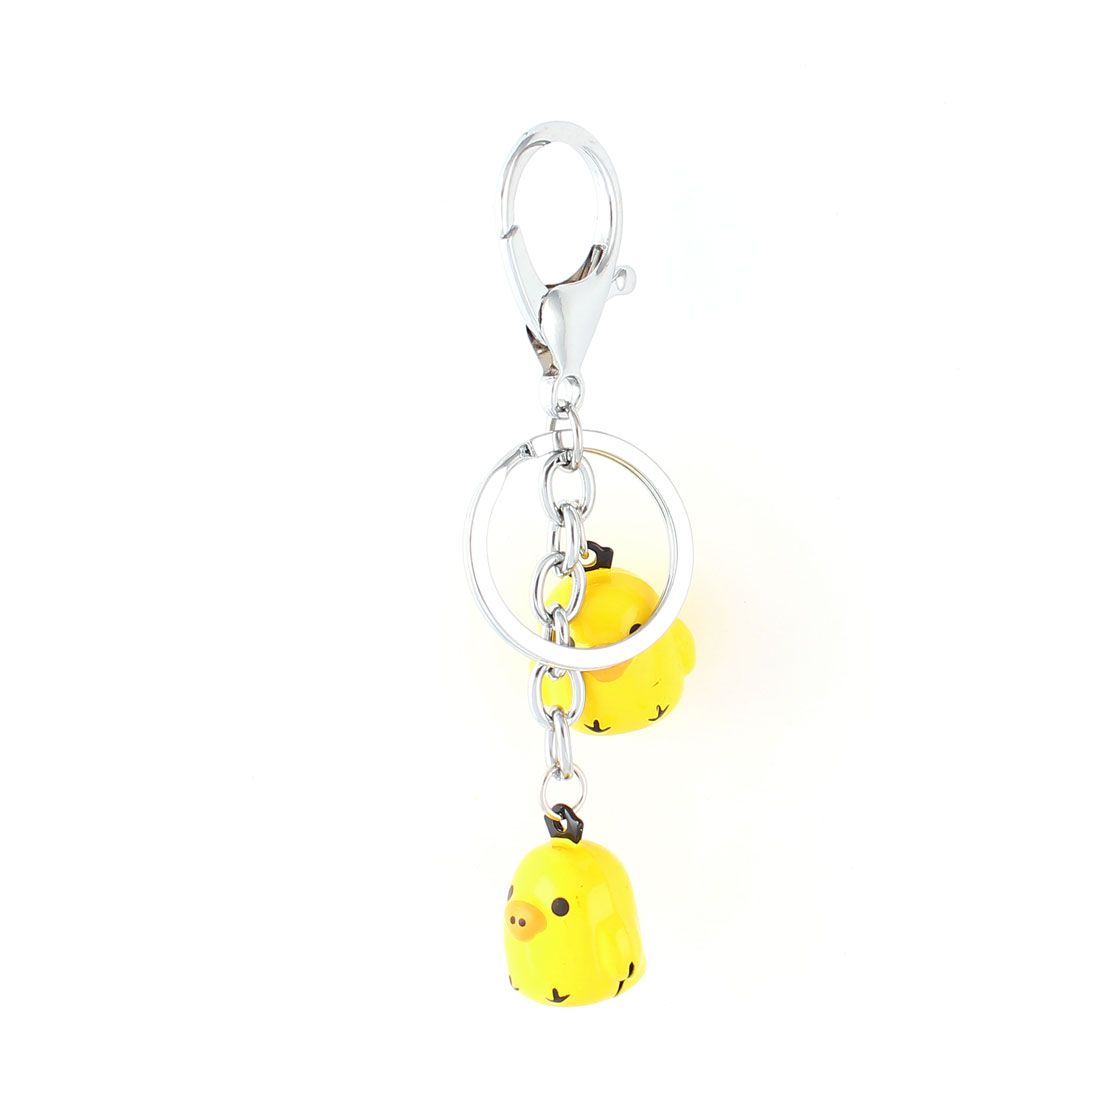 Yellow Dangling Poult Bells Decor Key Ring Keychain Keyring